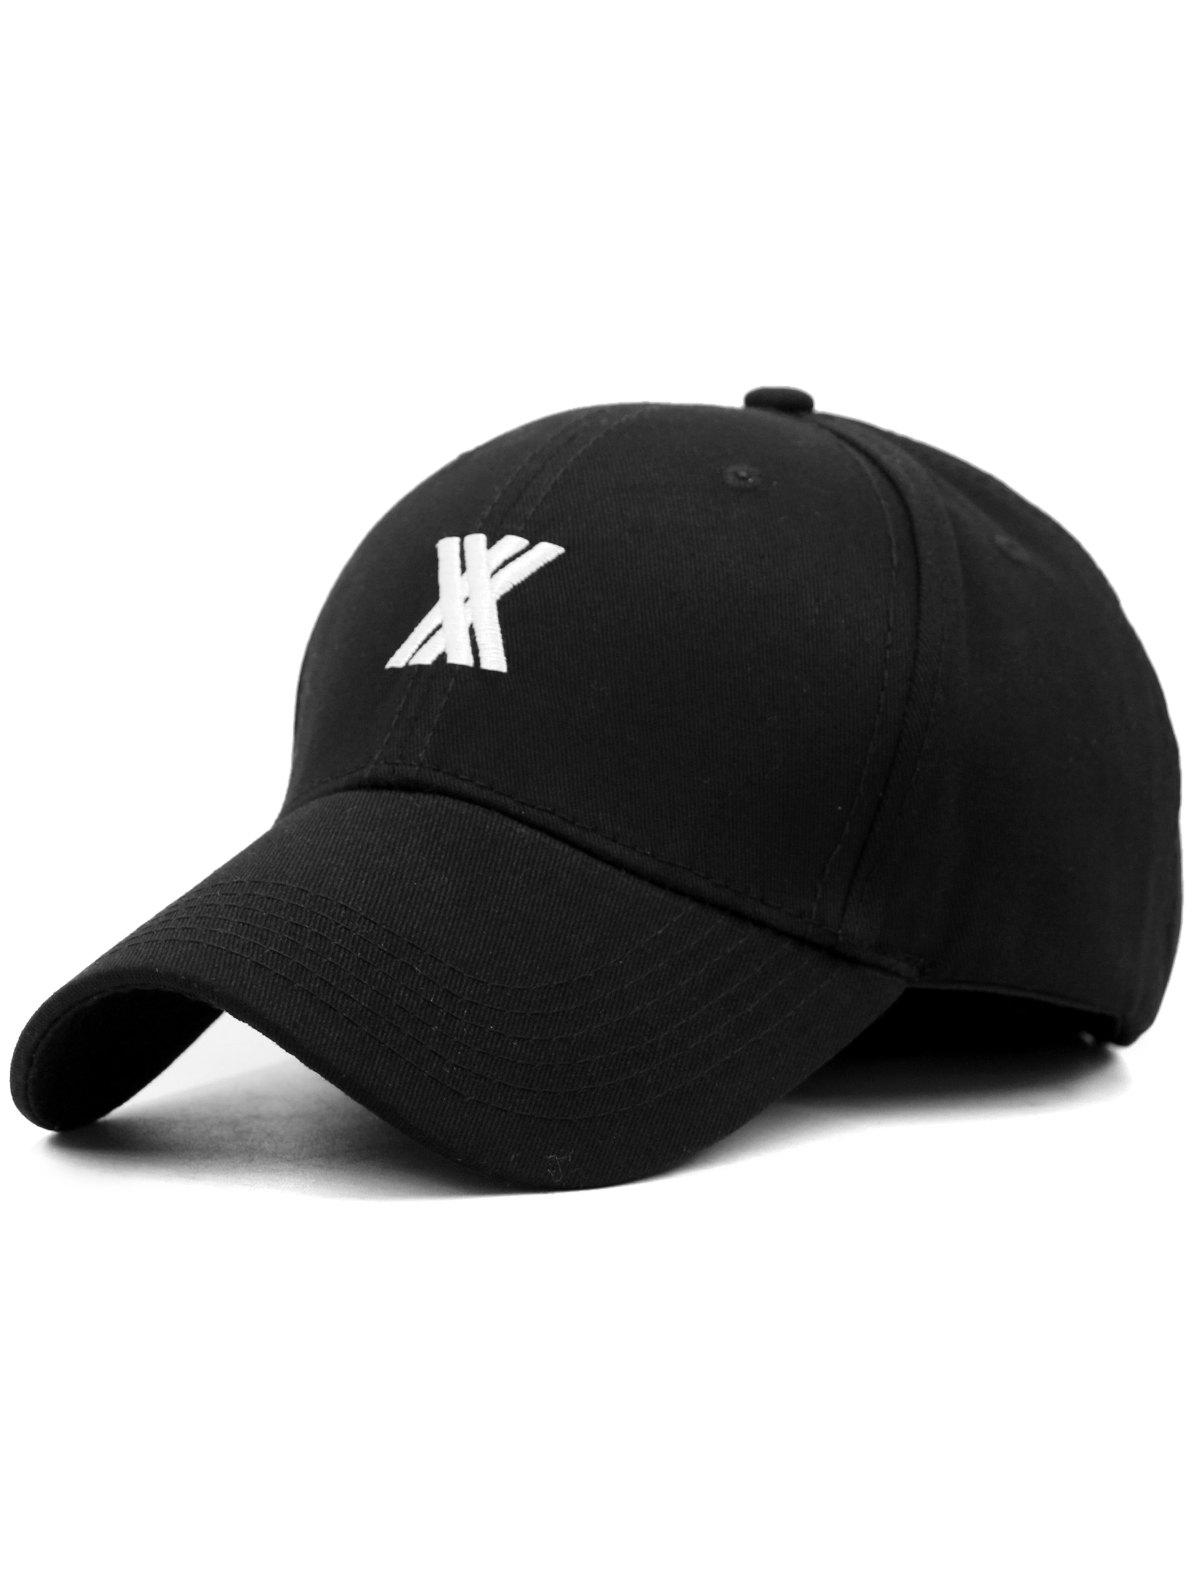 Outfits Stylish XX Embroidery Adjustable Graphic Hat